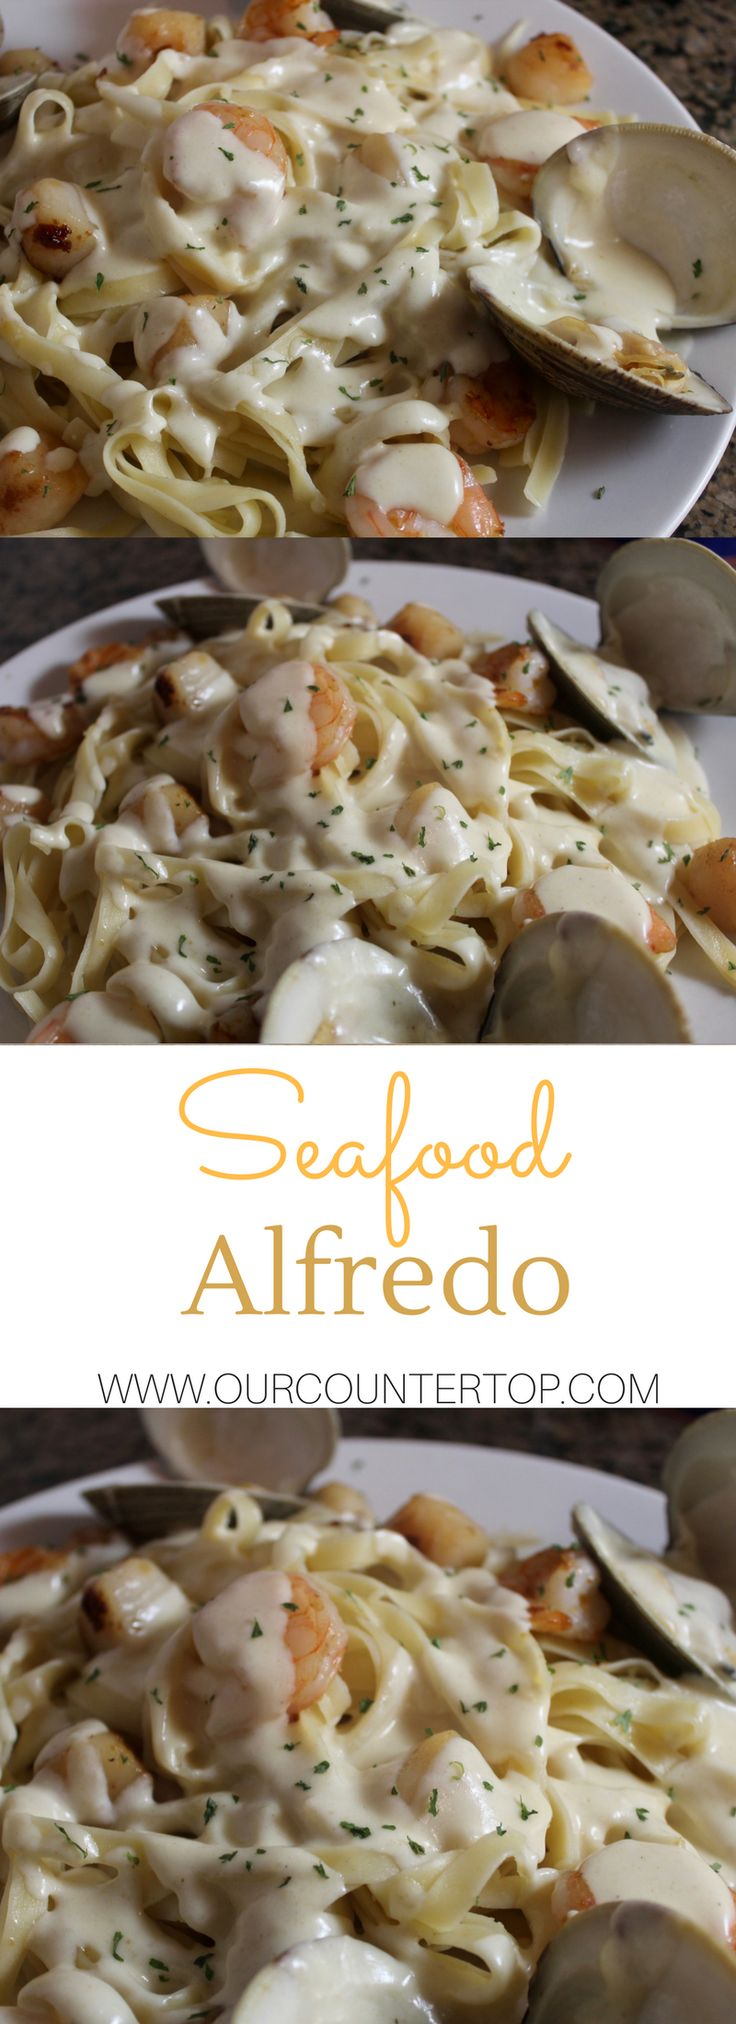 Seafood alfredo to try